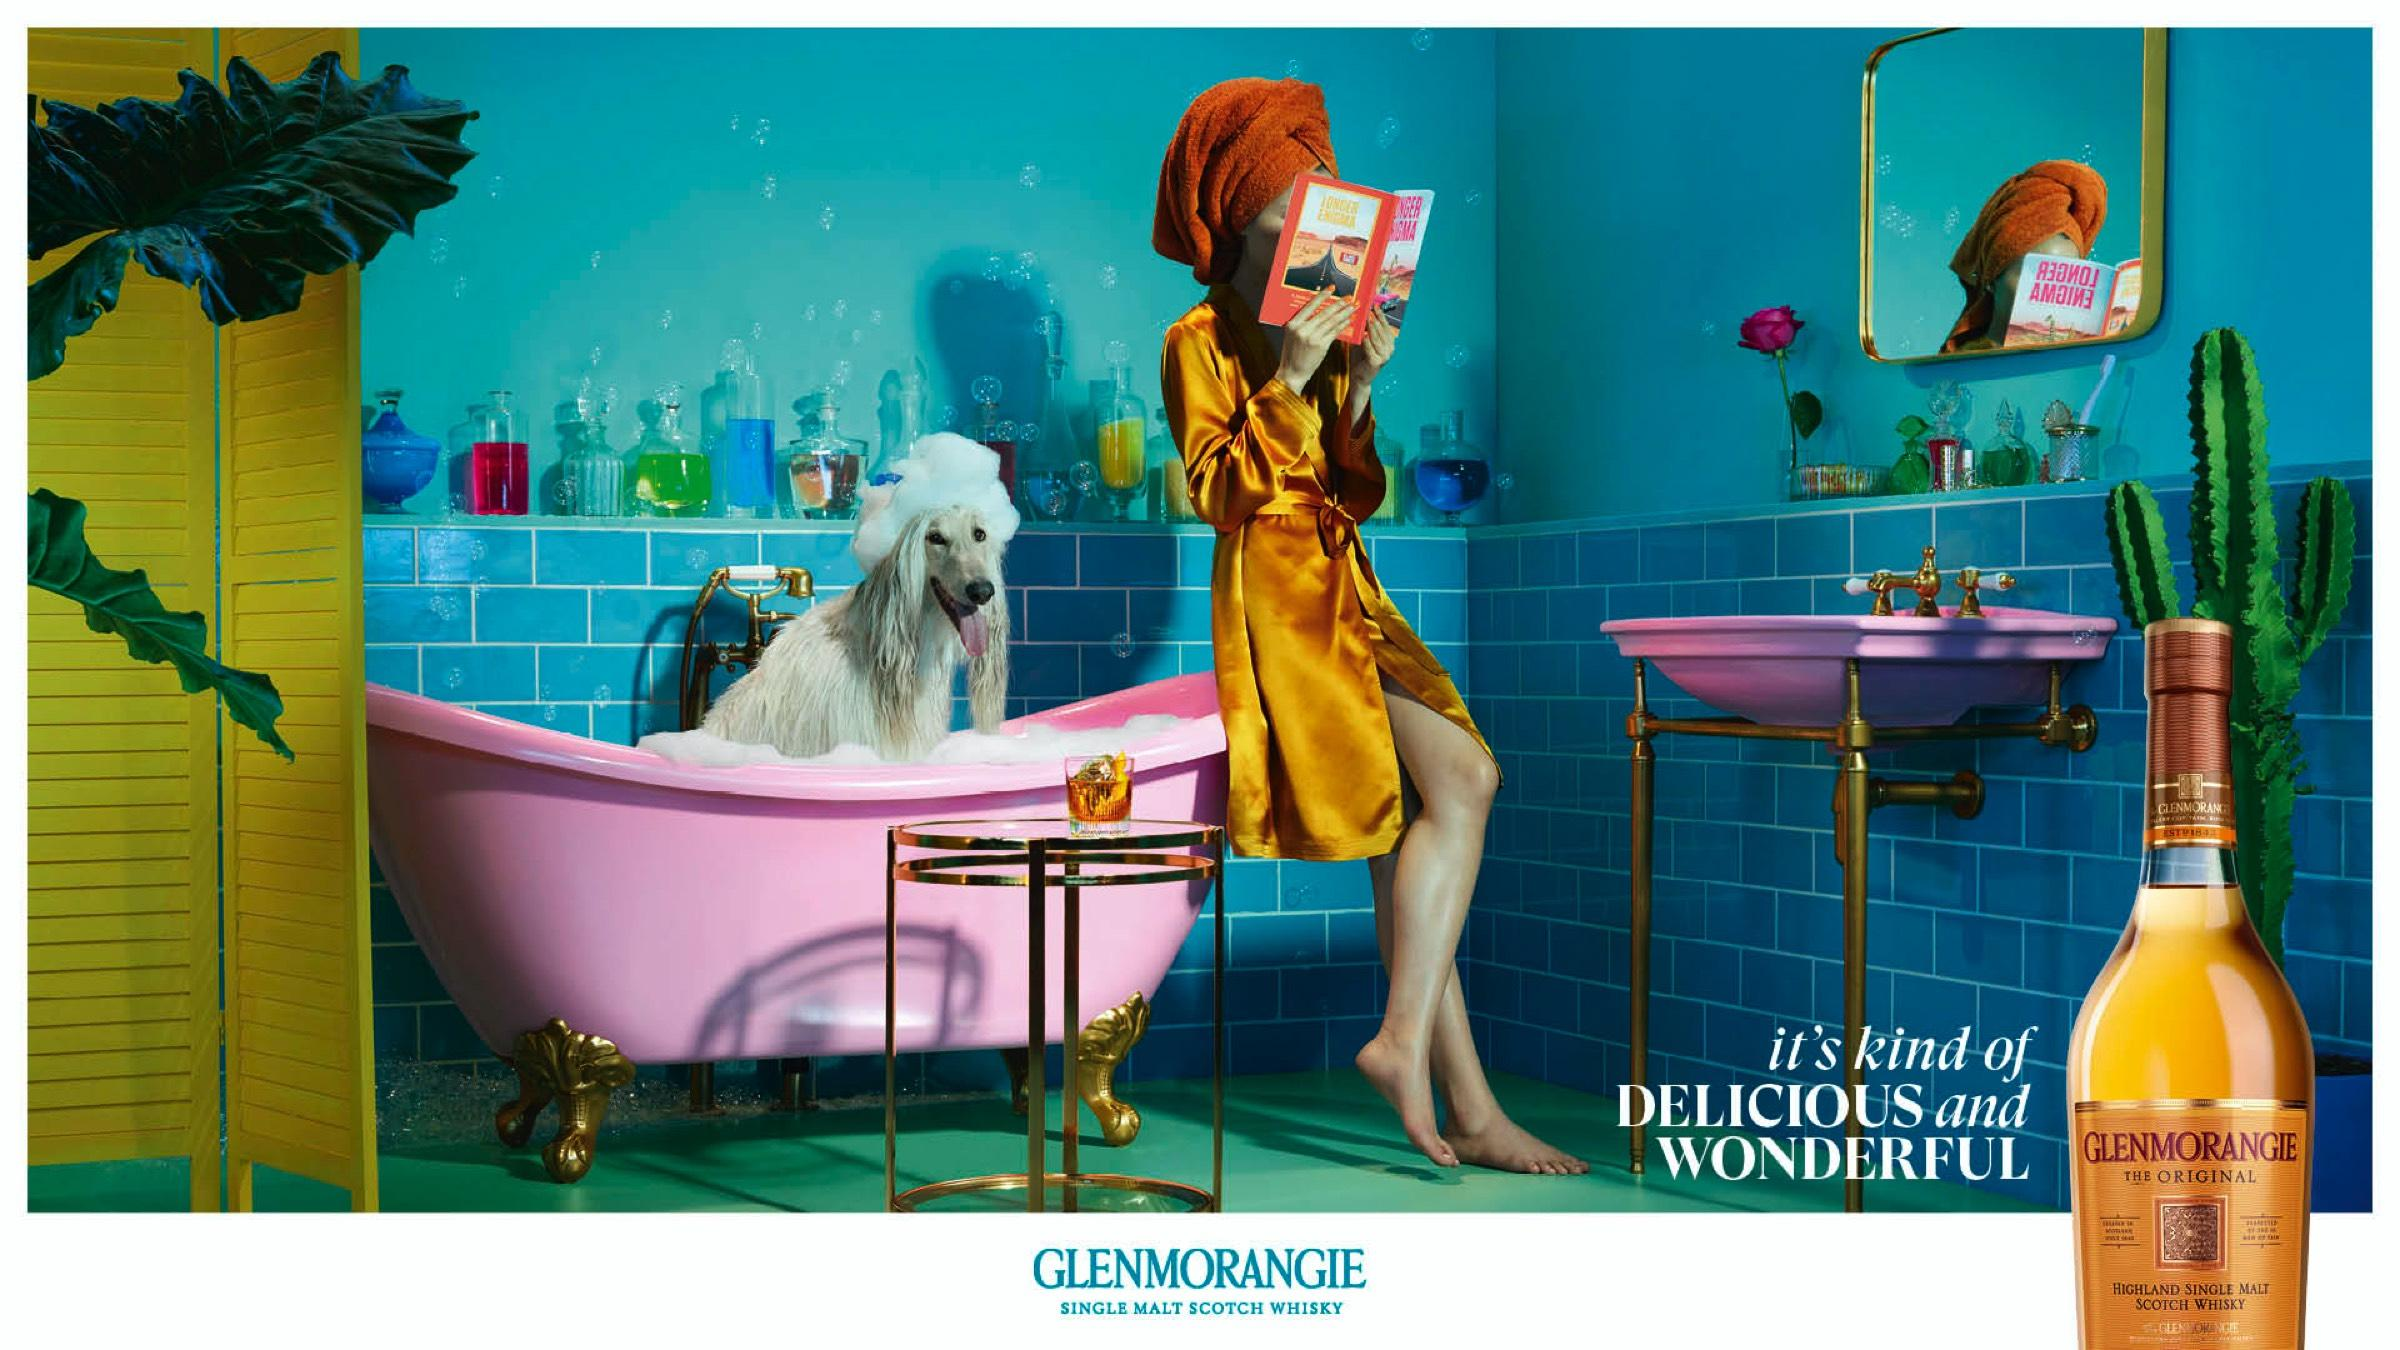 Glenmorangie: It's kind of delicious and wonderful